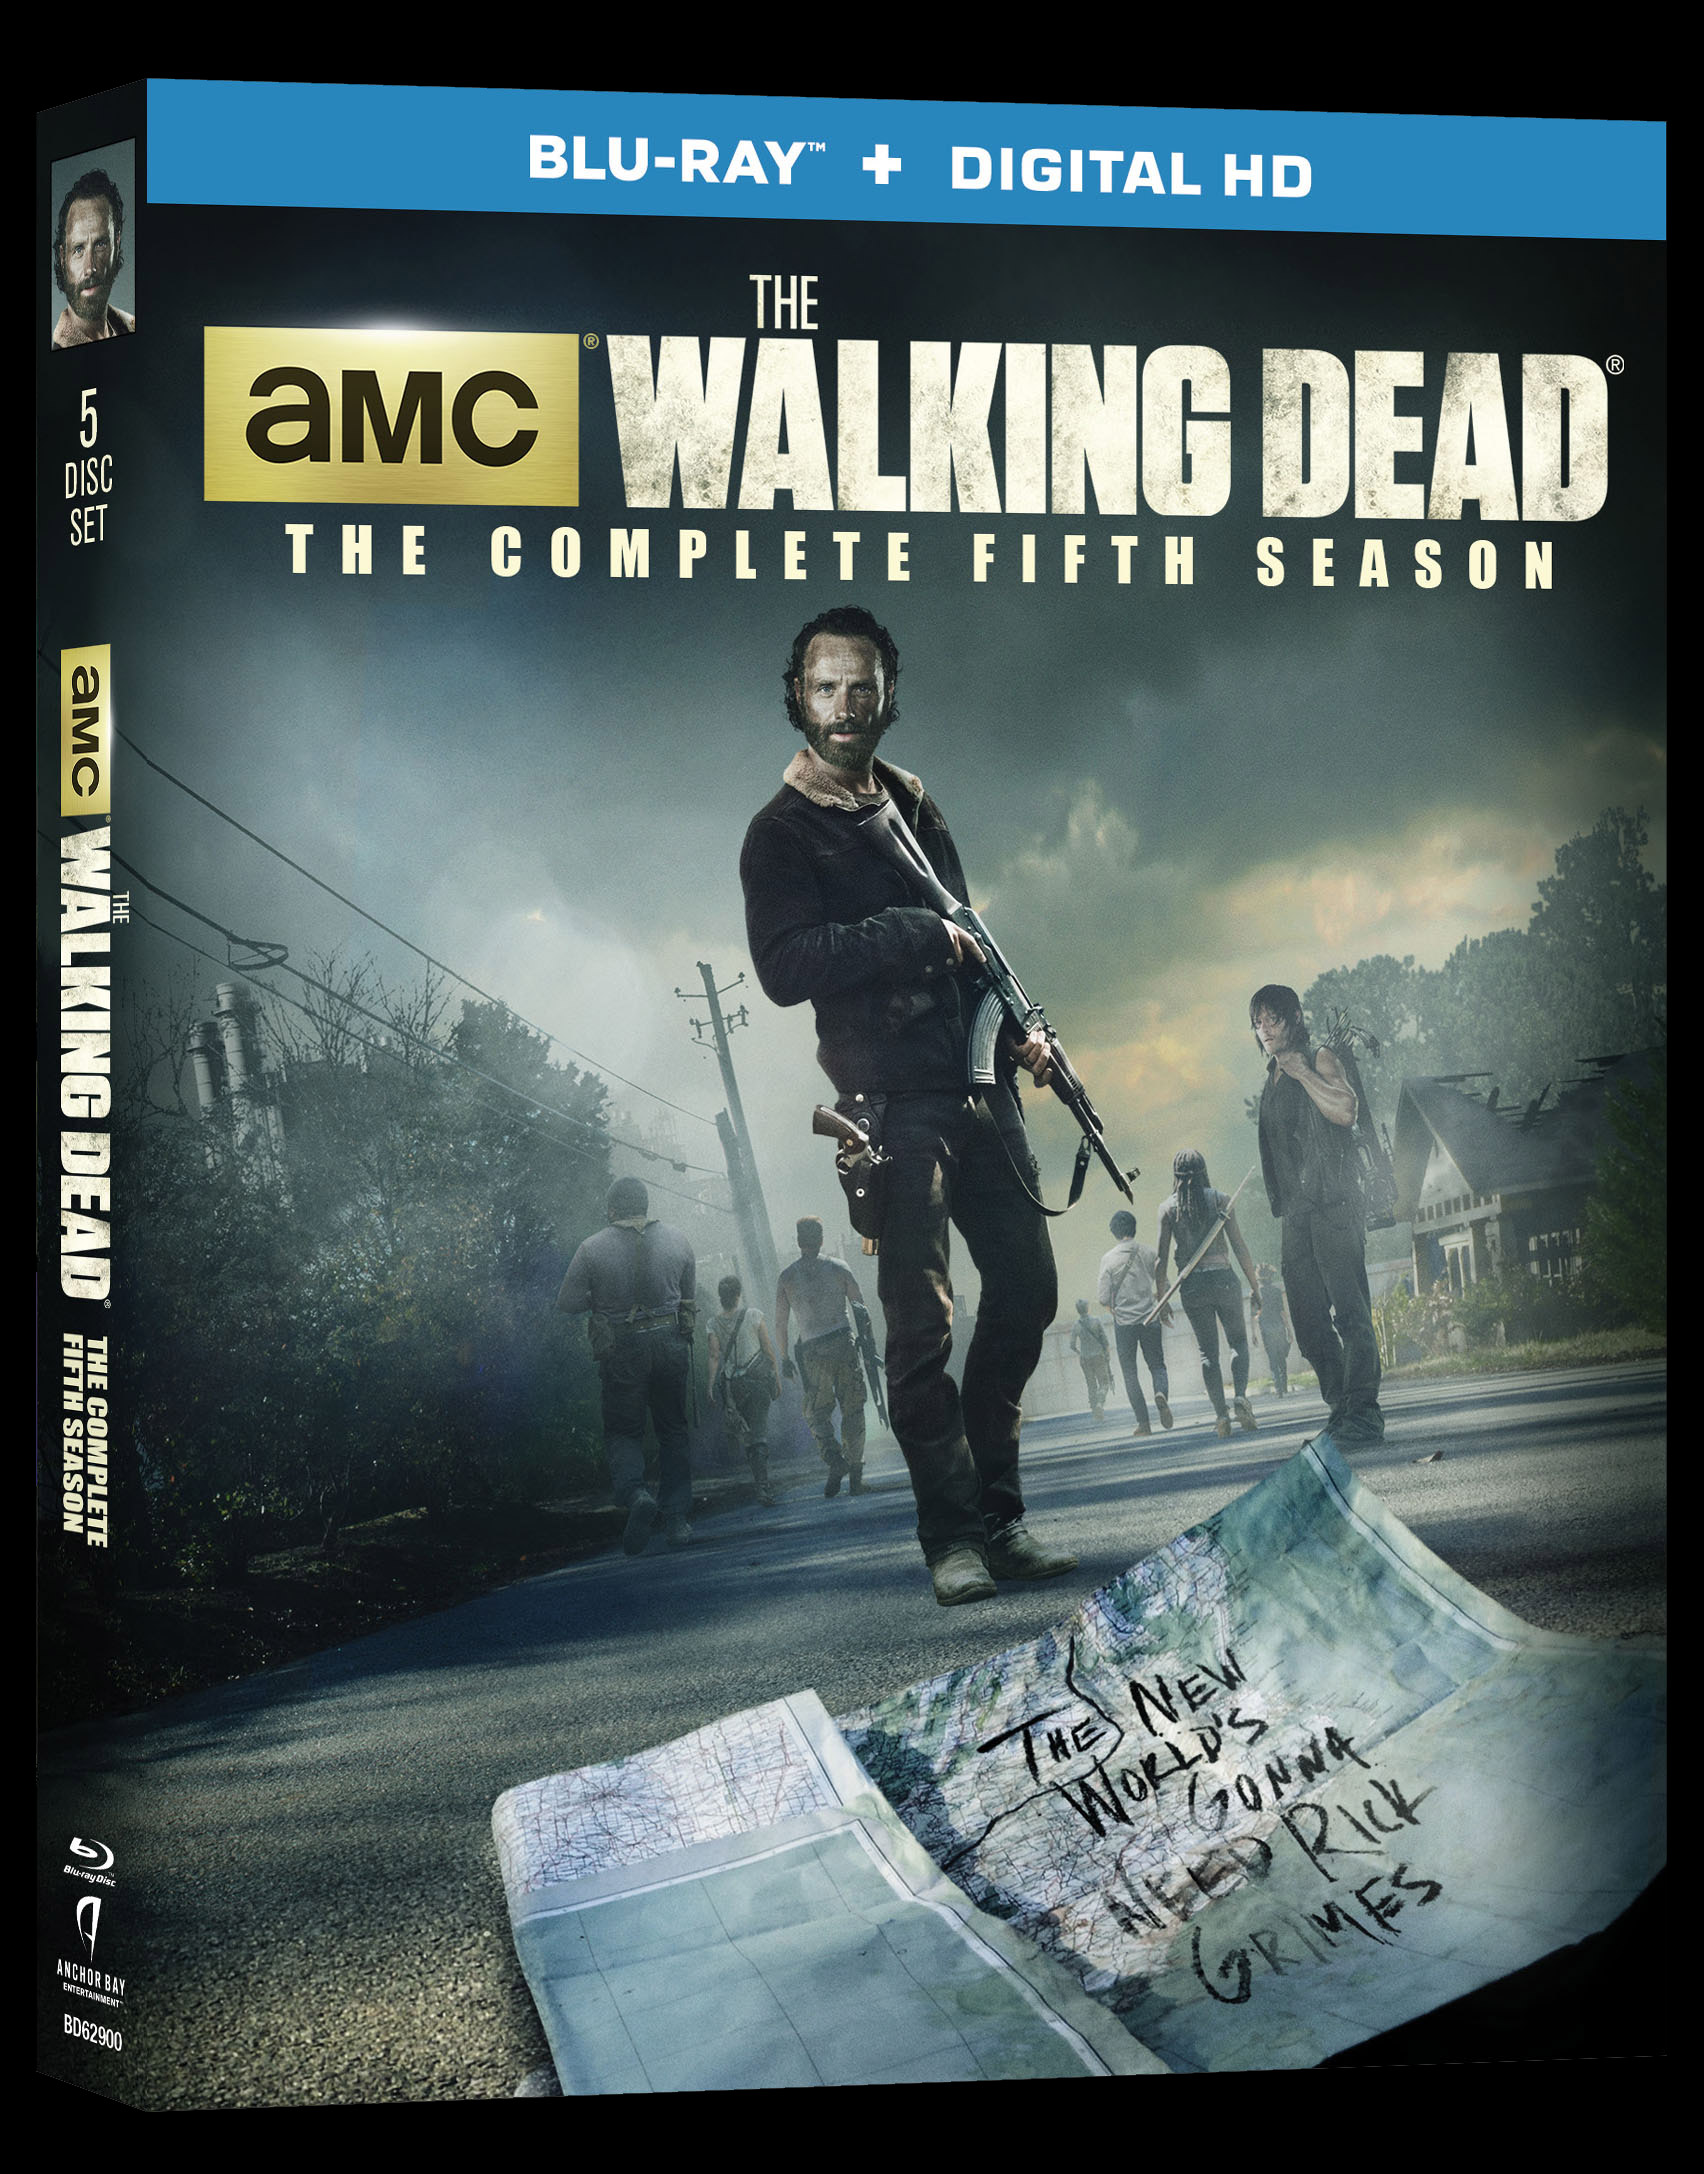 The Walking Dead Season 5 Hitting Blu Ray And Dvd In August